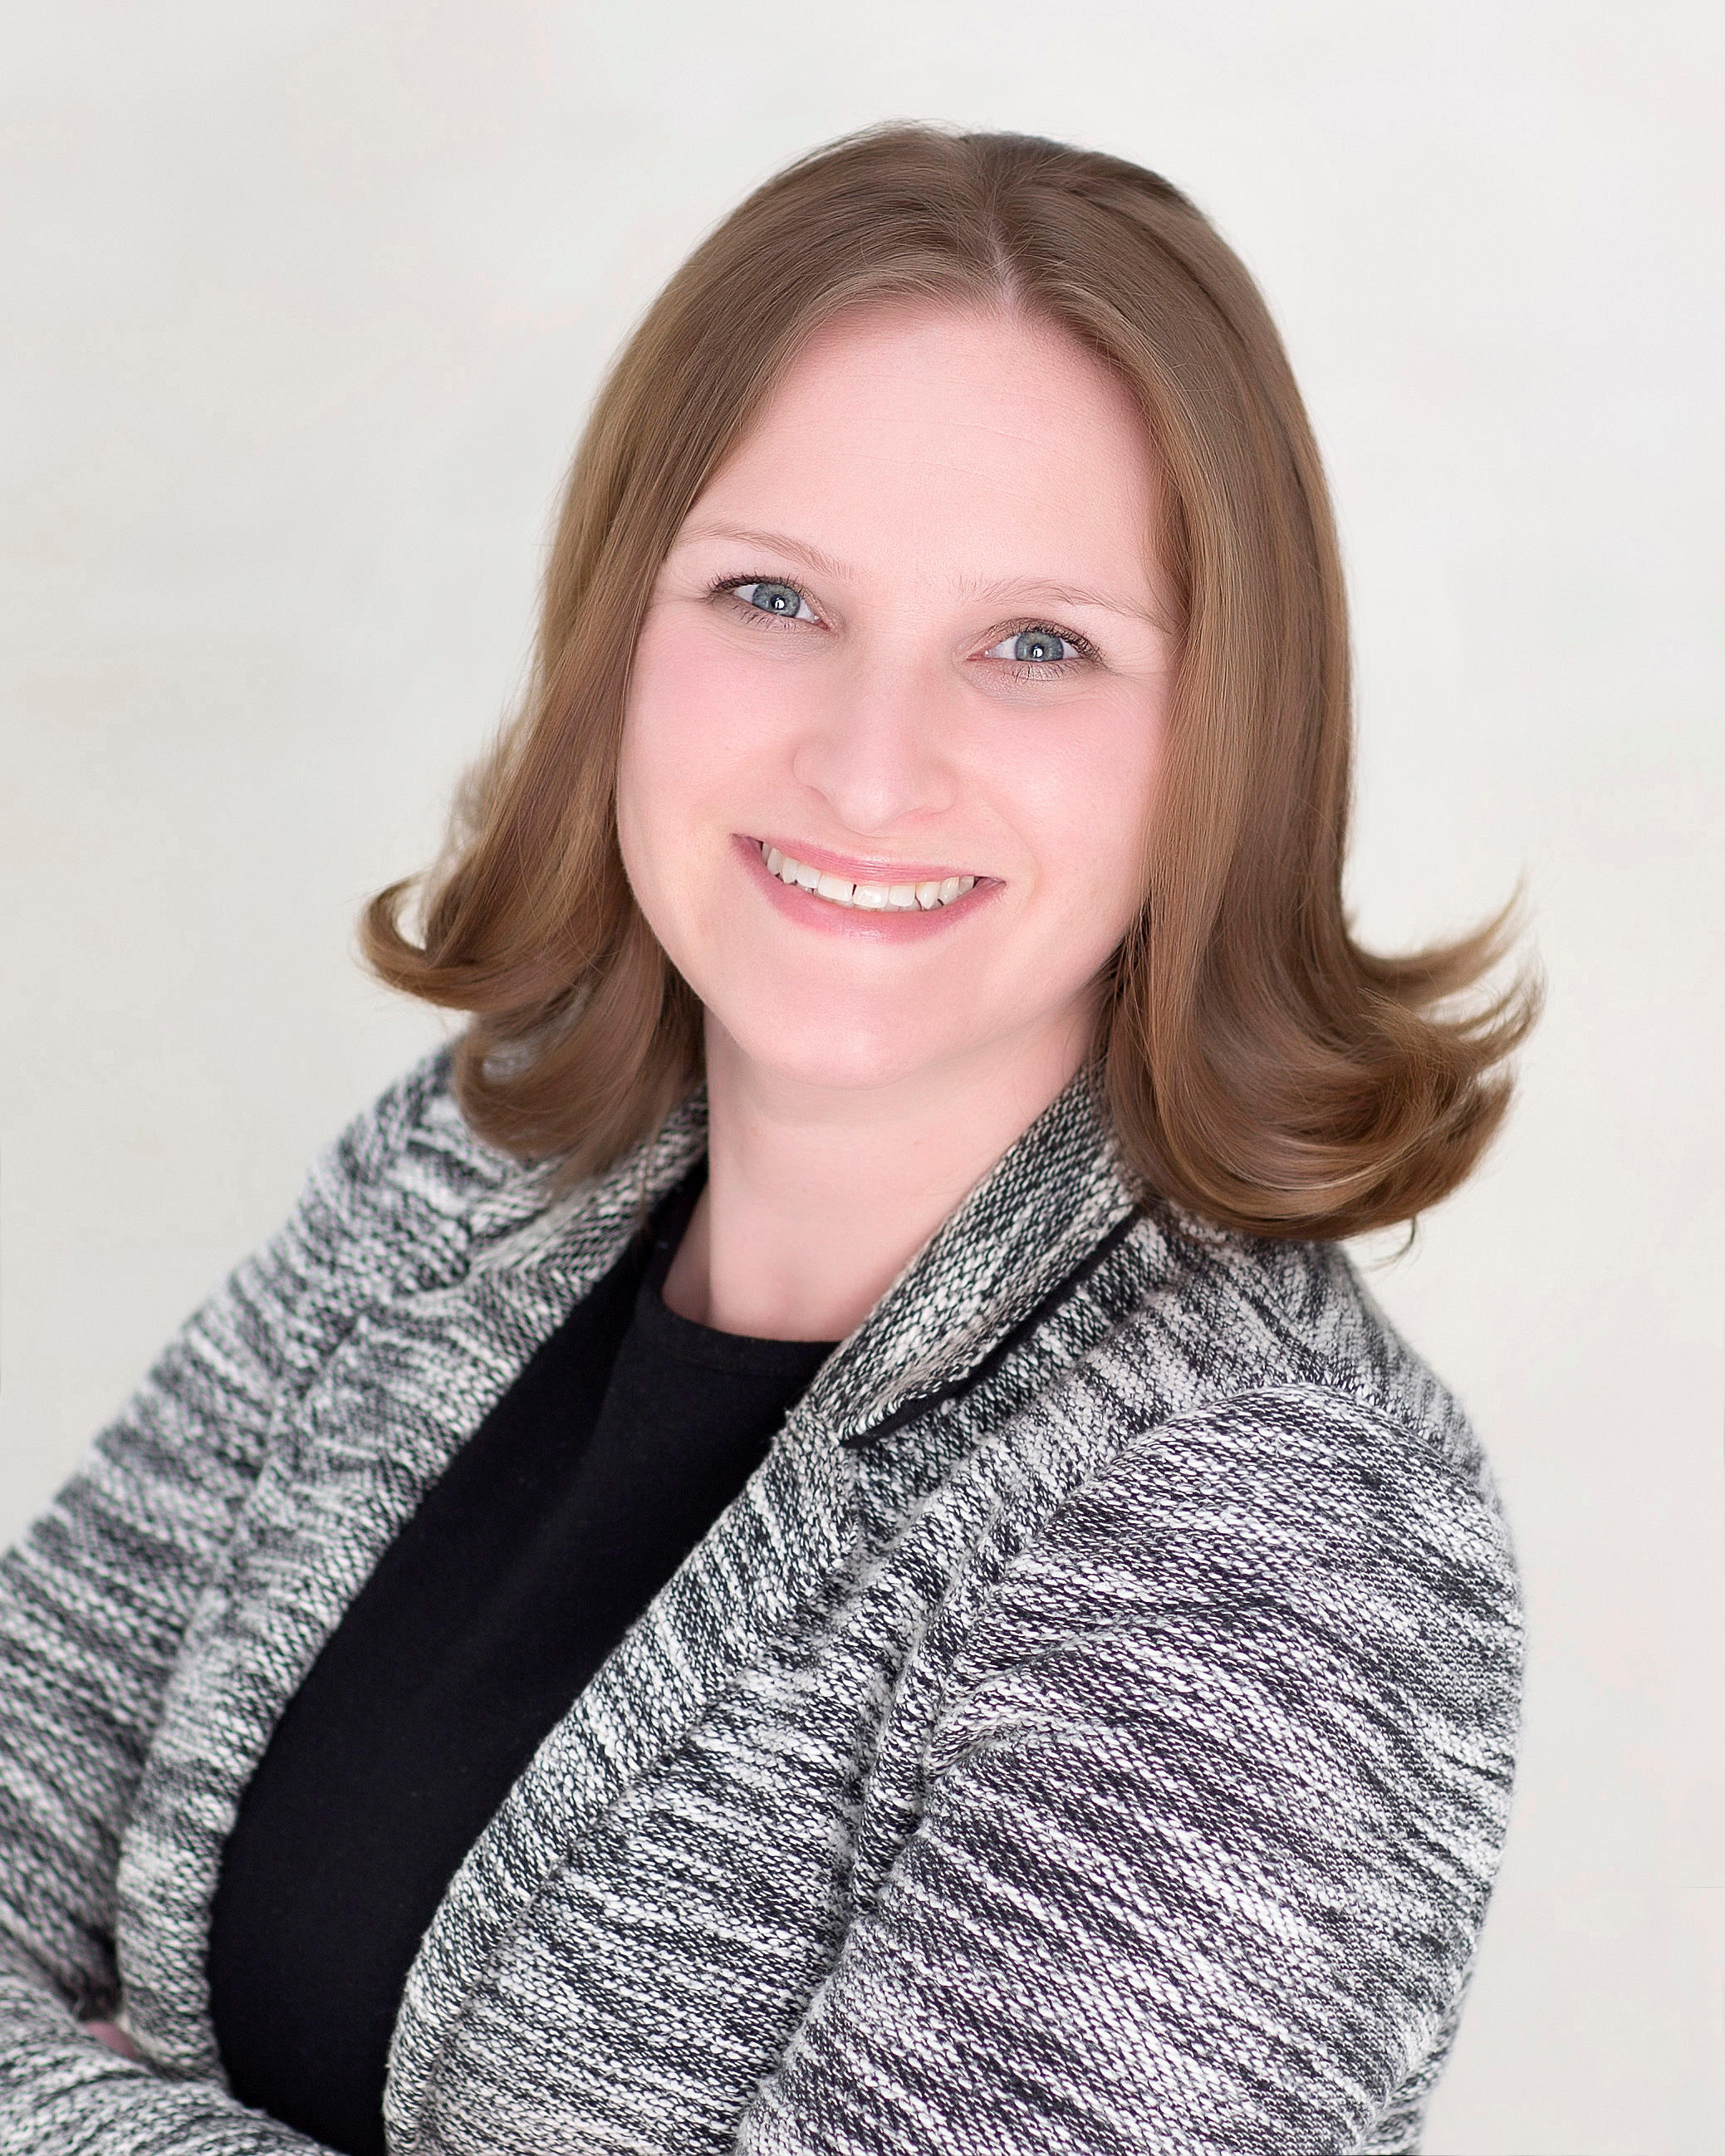 Kera Reed is an attorney at Burner Law Group, P.C. She joined the firm in January 2012 and now spearheads the firms Estate and Trust Division overseeing all phases of Probate and Estate administration